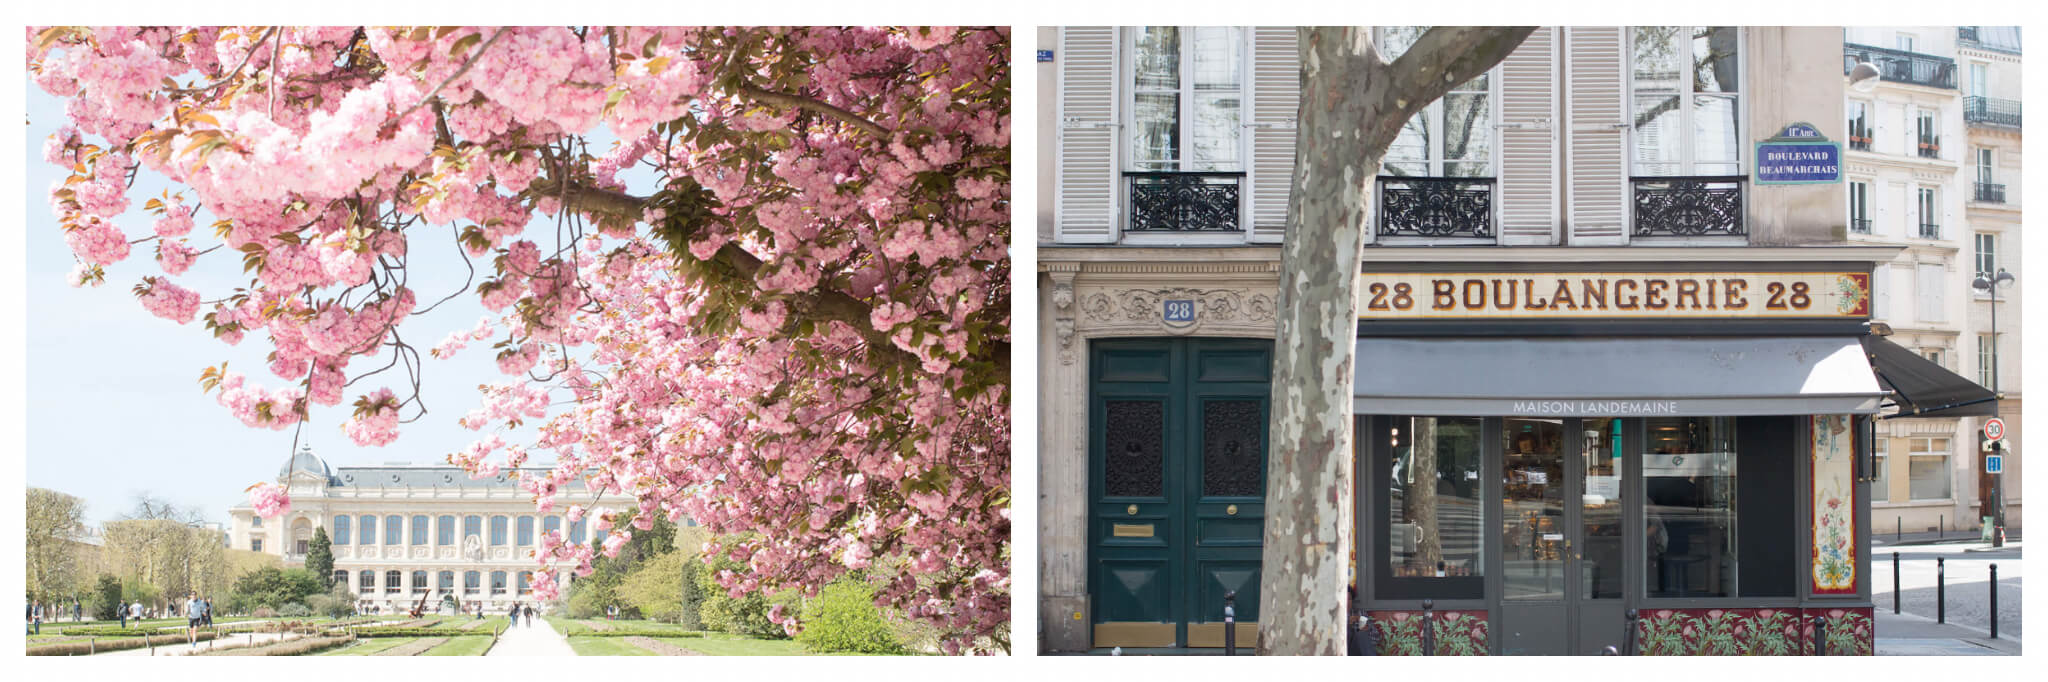 On left: A wave of pink cherry blossoms frame a view of the Grande Galerie de l'Évolution in Paris' botanical garden, the Jardin des Plantes, in the 5th arrondissement. On right: One of Rebecca's favorite places for a pastry is Maison Landemaine on Boulevard Beaumarchais in Paris' Marias neighborhood.